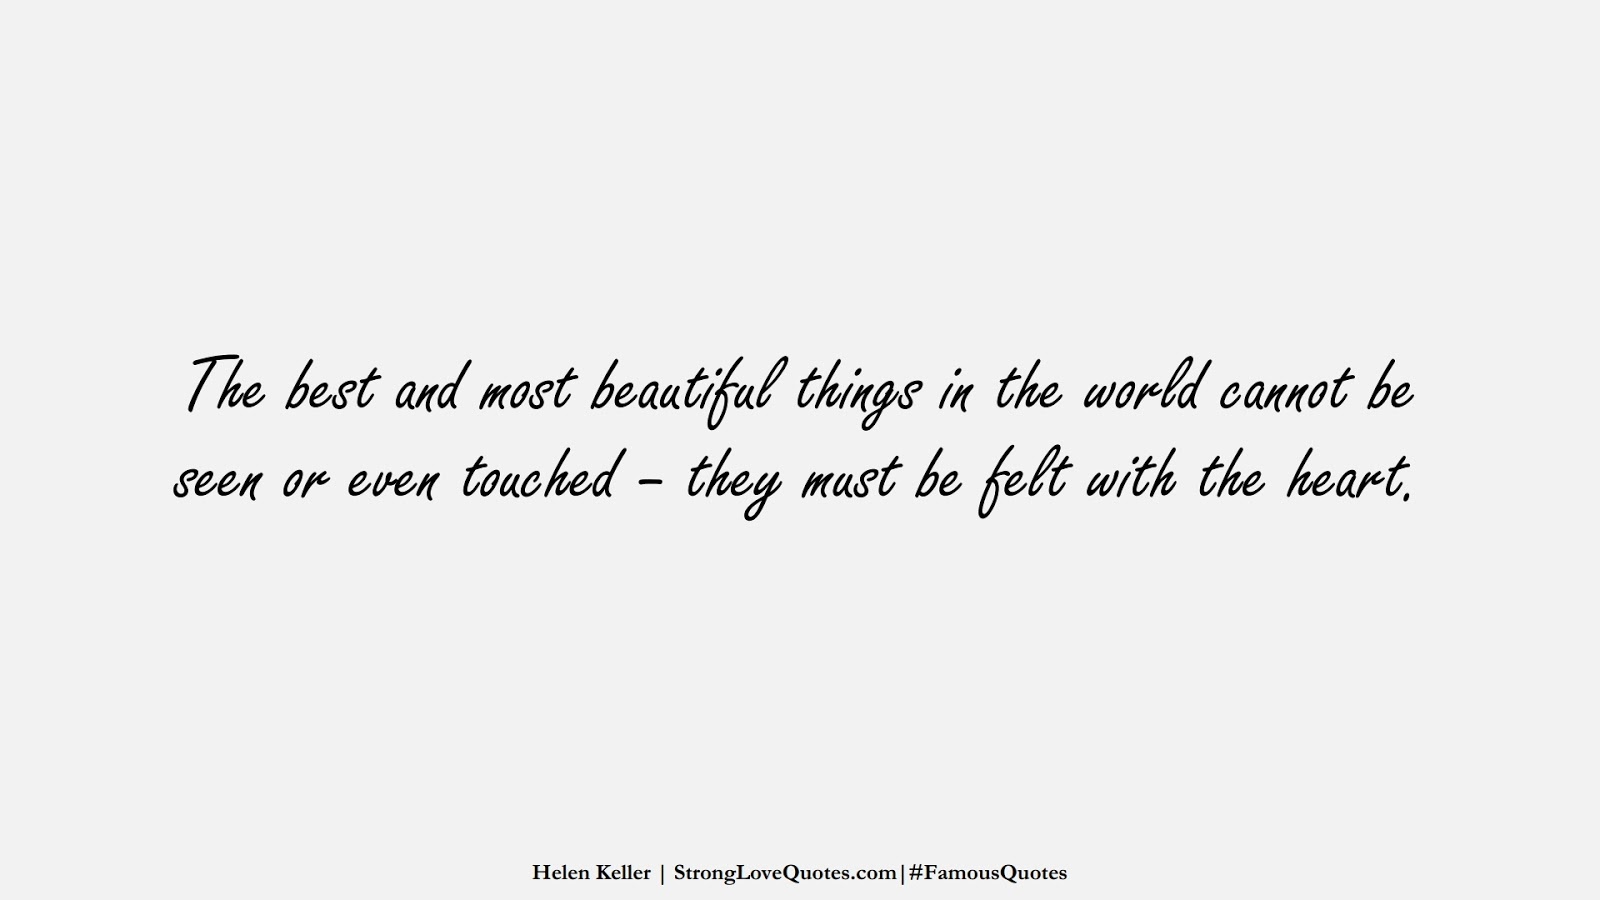 The best and most beautiful things in the world cannot be seen or even touched – they must be felt with the heart. (Helen Keller);  #FamousQuotes